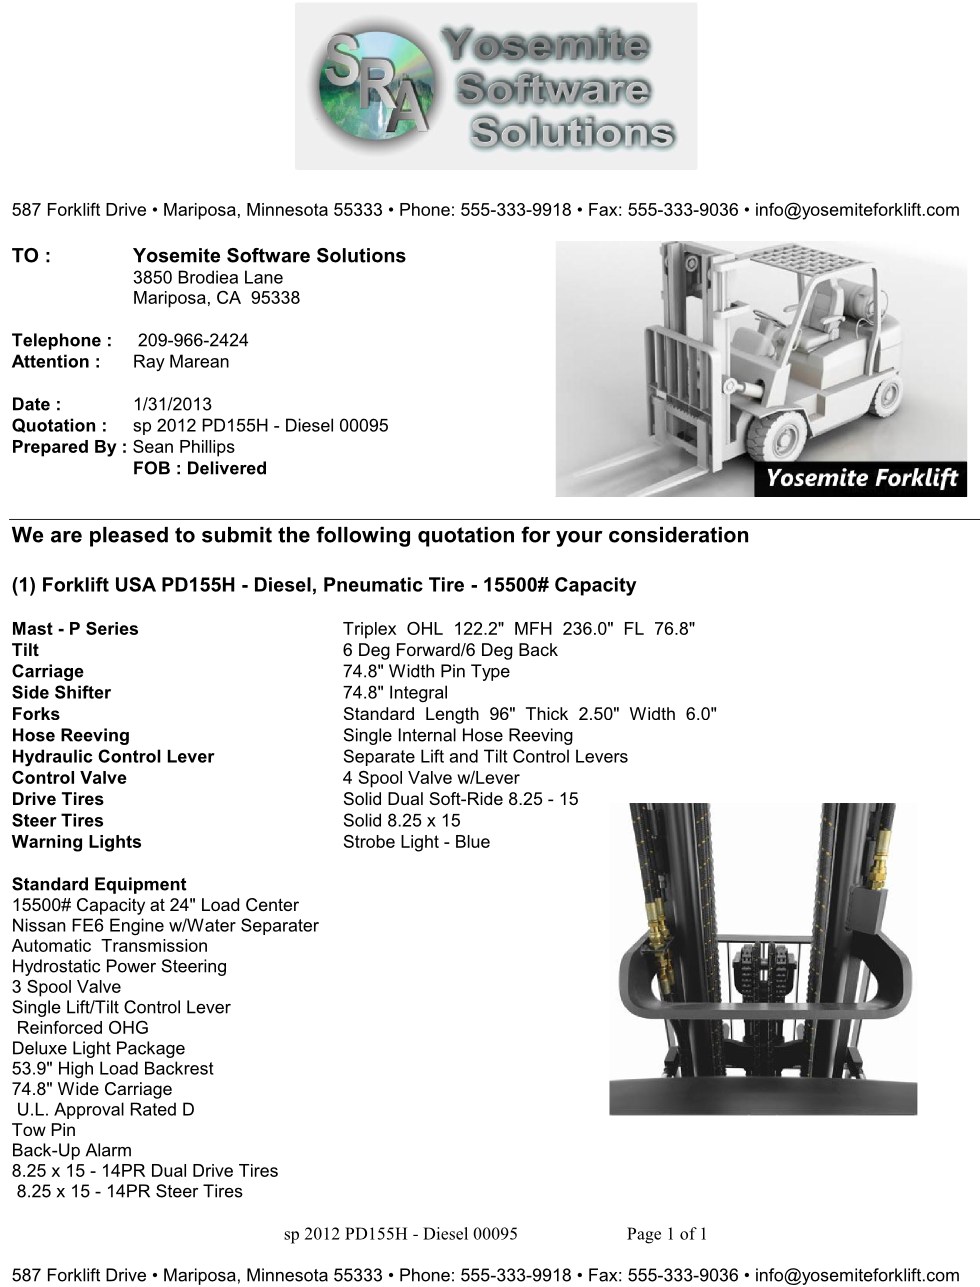 sra forklift proposal templates yosemite software s rep s yssquote